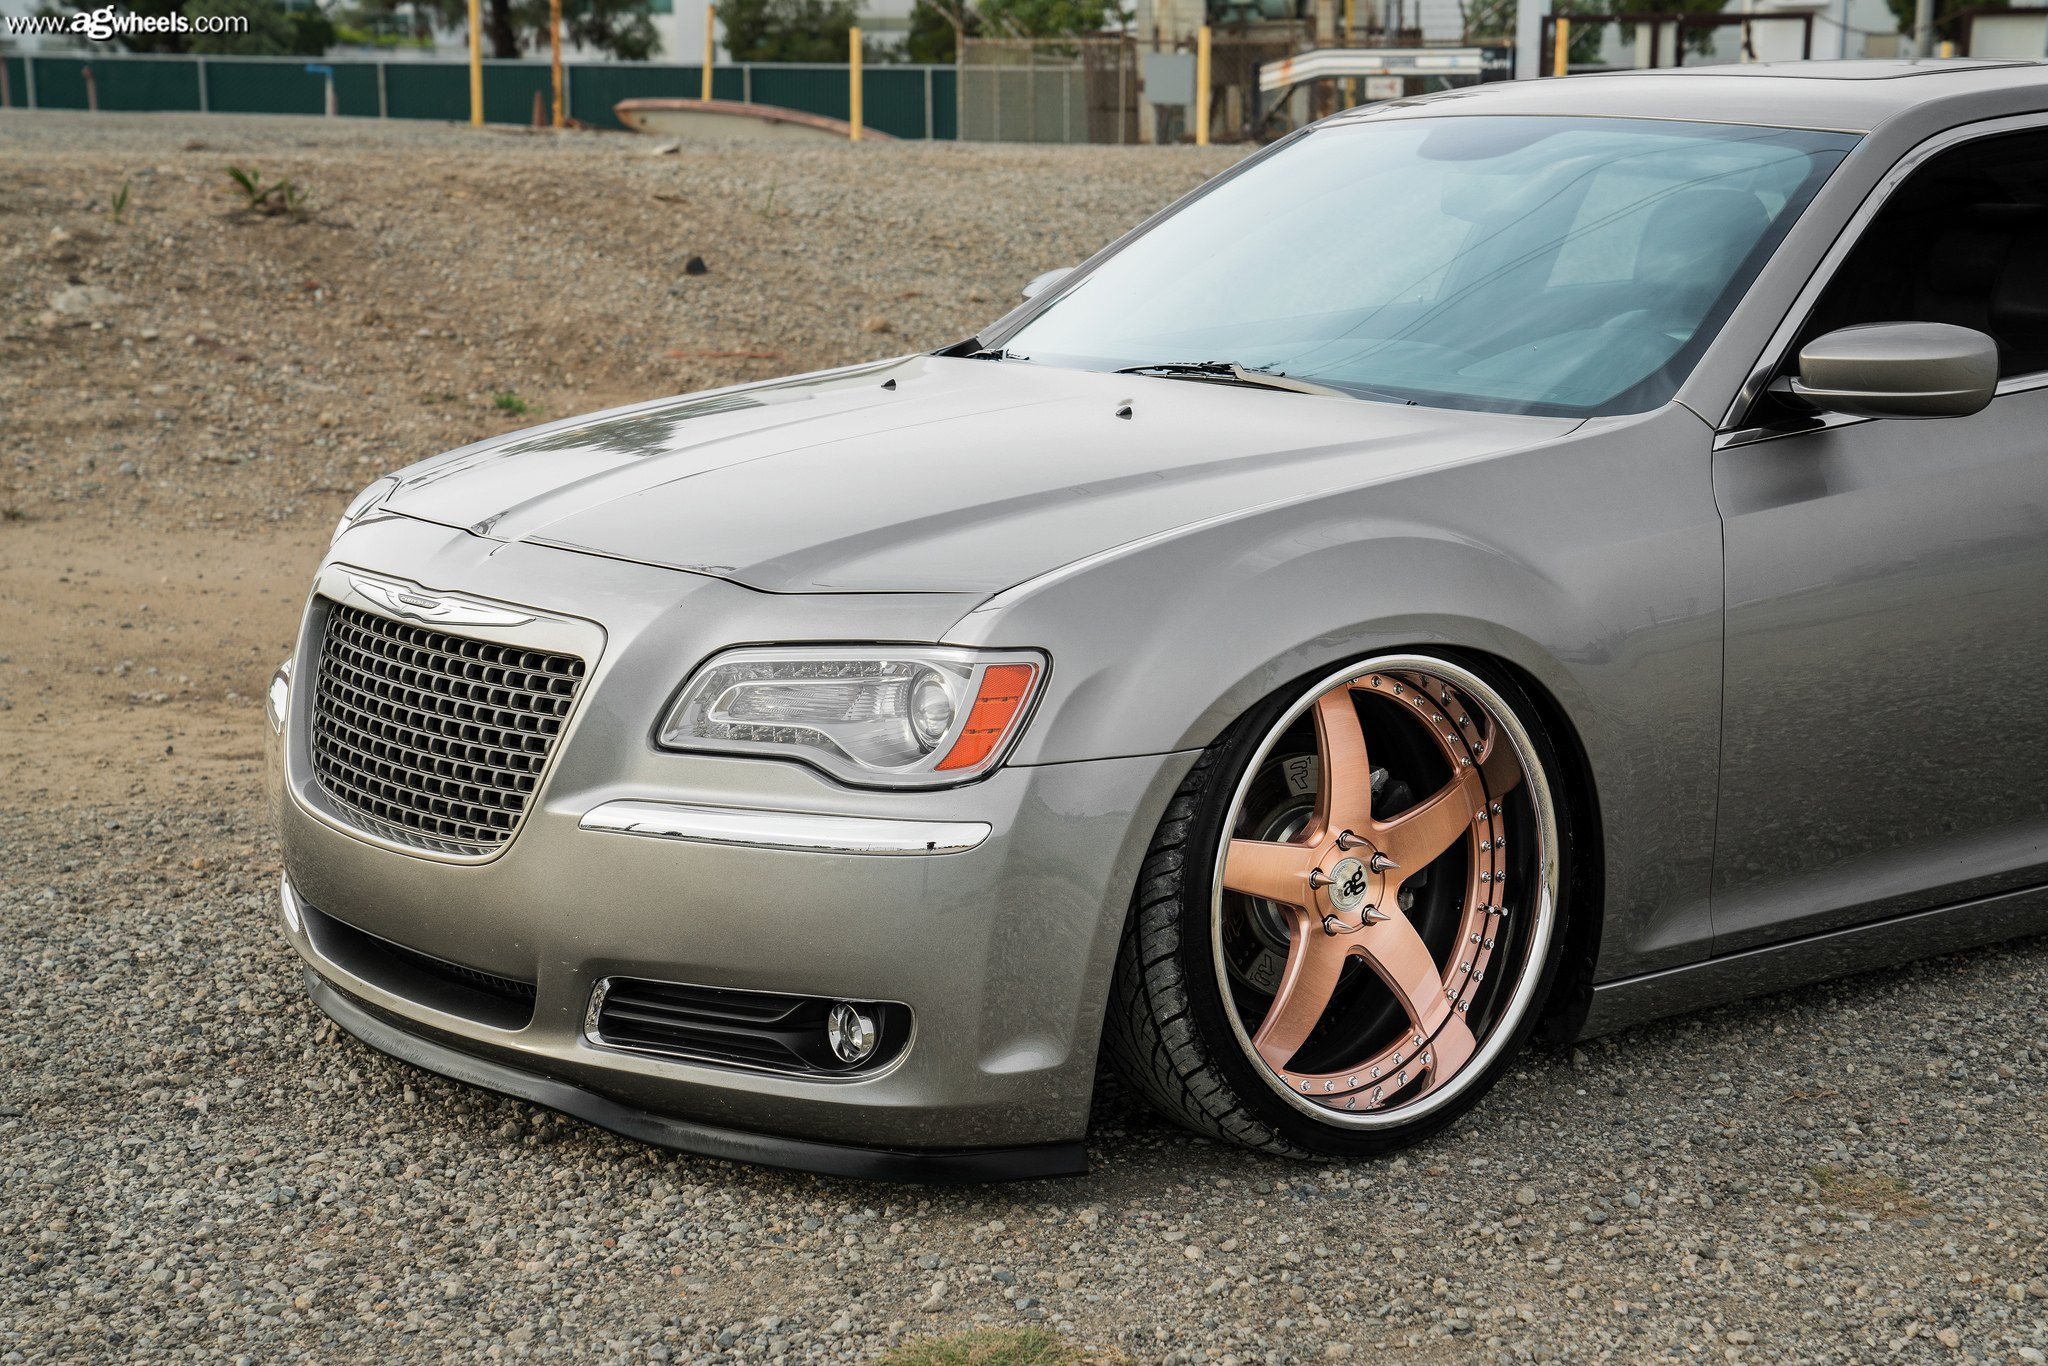 Gray Lowered Chrysler 300 with Custom Headlights - Photo by Avant Garde Wheels